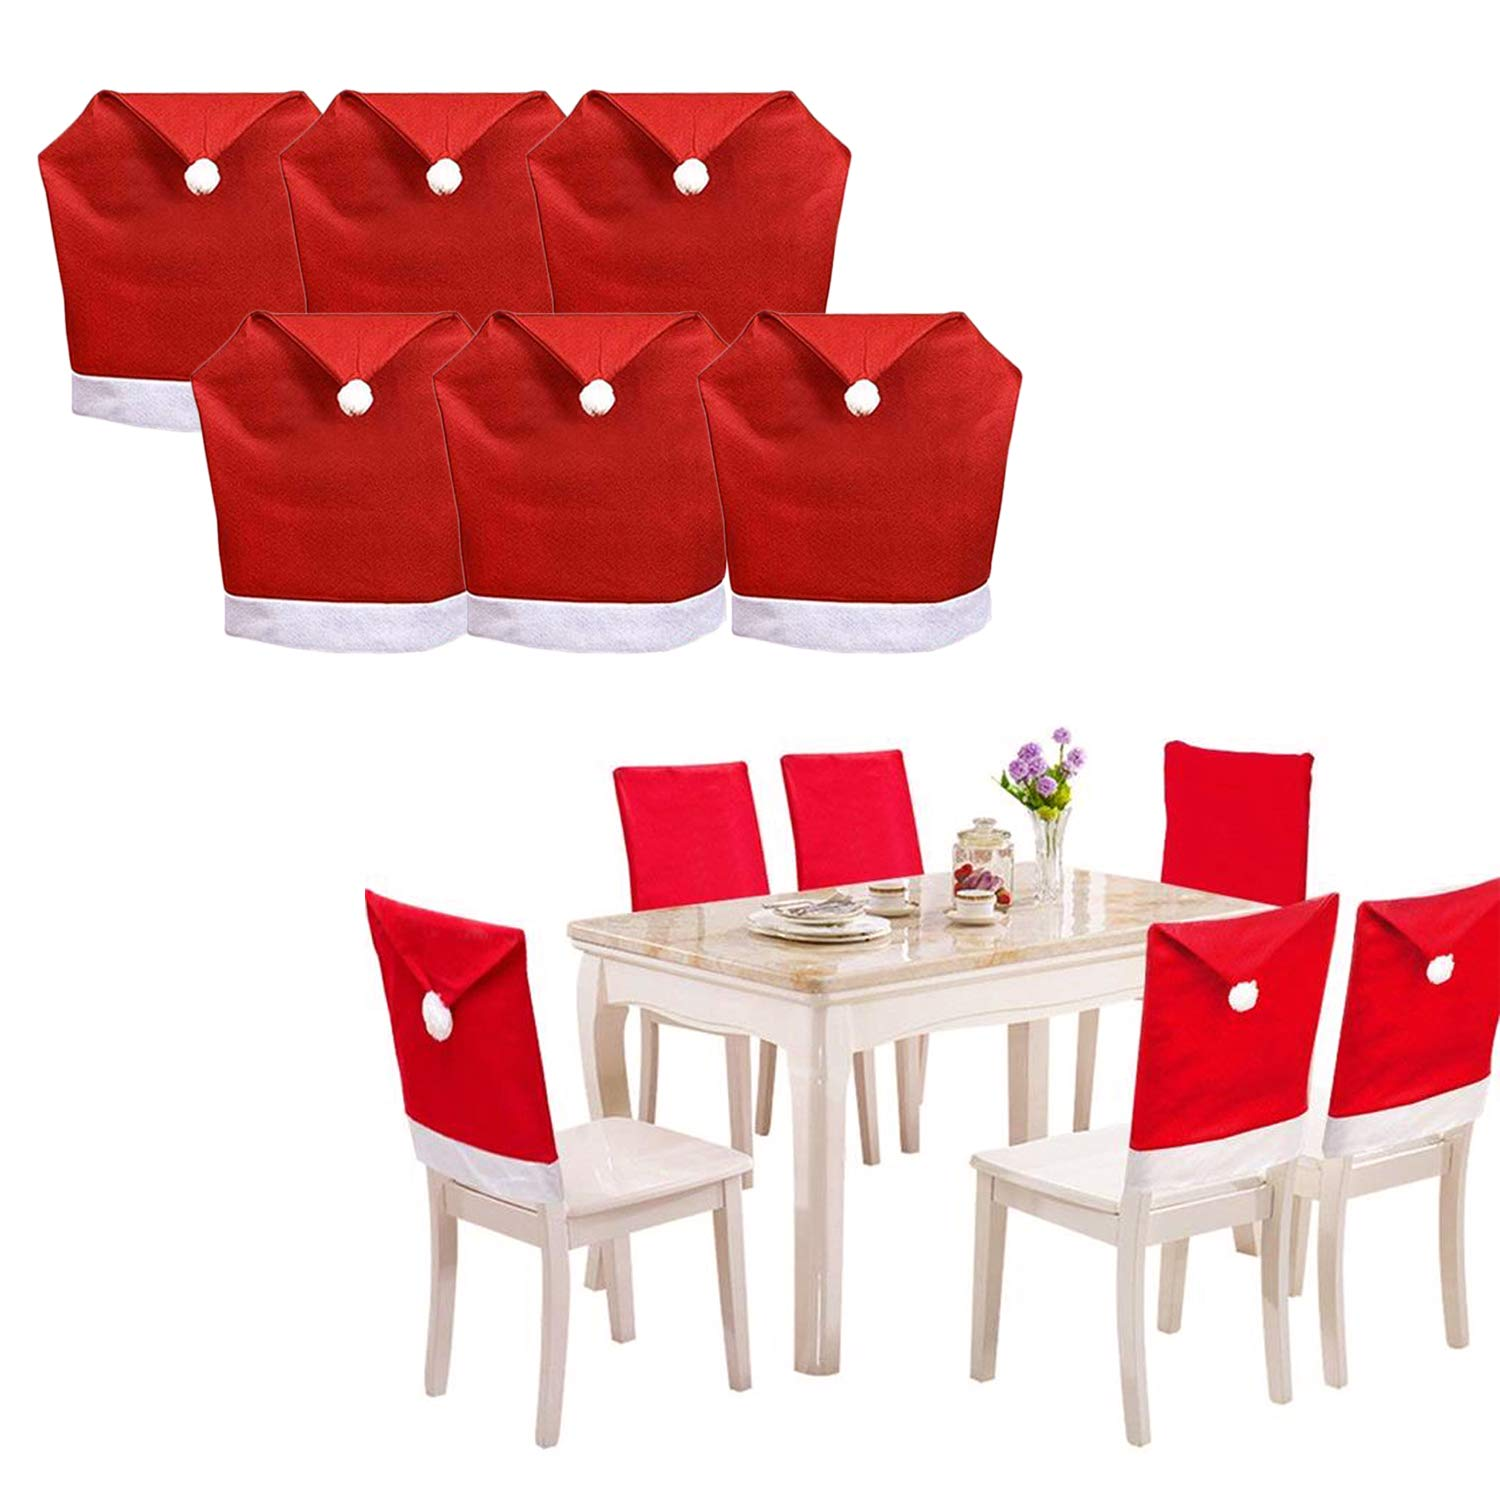 SunTrade 10 Pack Santa Hat Dining Chair Covers,for Christmas Xmas Dinner  Table Chairs Decoration